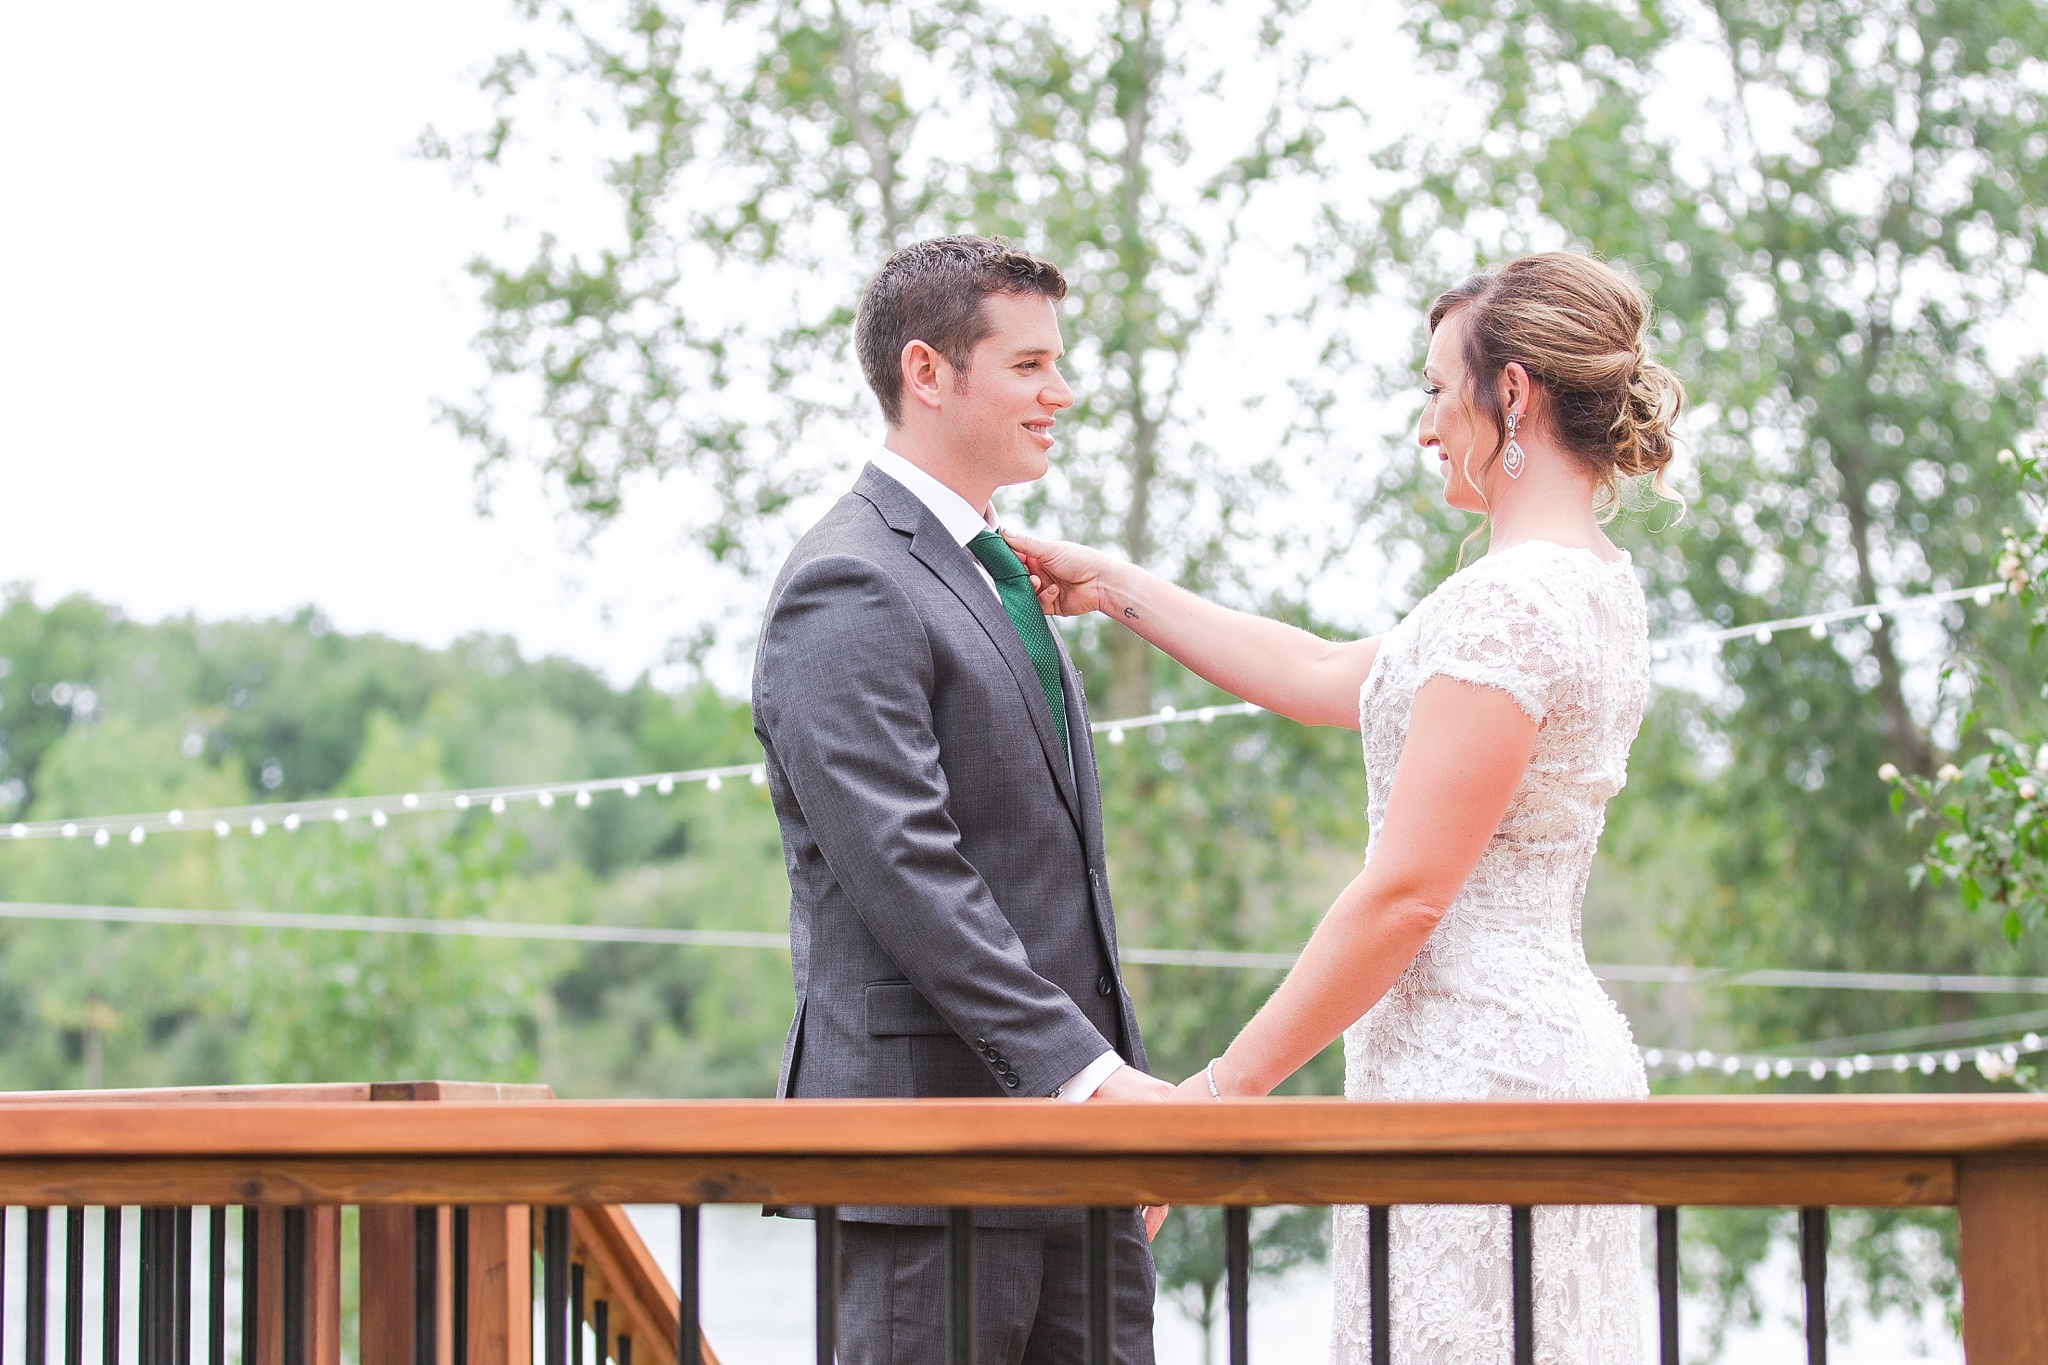 romantic-artful-candid-wedding-photos-in-detroit-lansing-ann-arbor-northern-michigan-and-chicago-by-courtney-carolyn-photography_0063.jpg